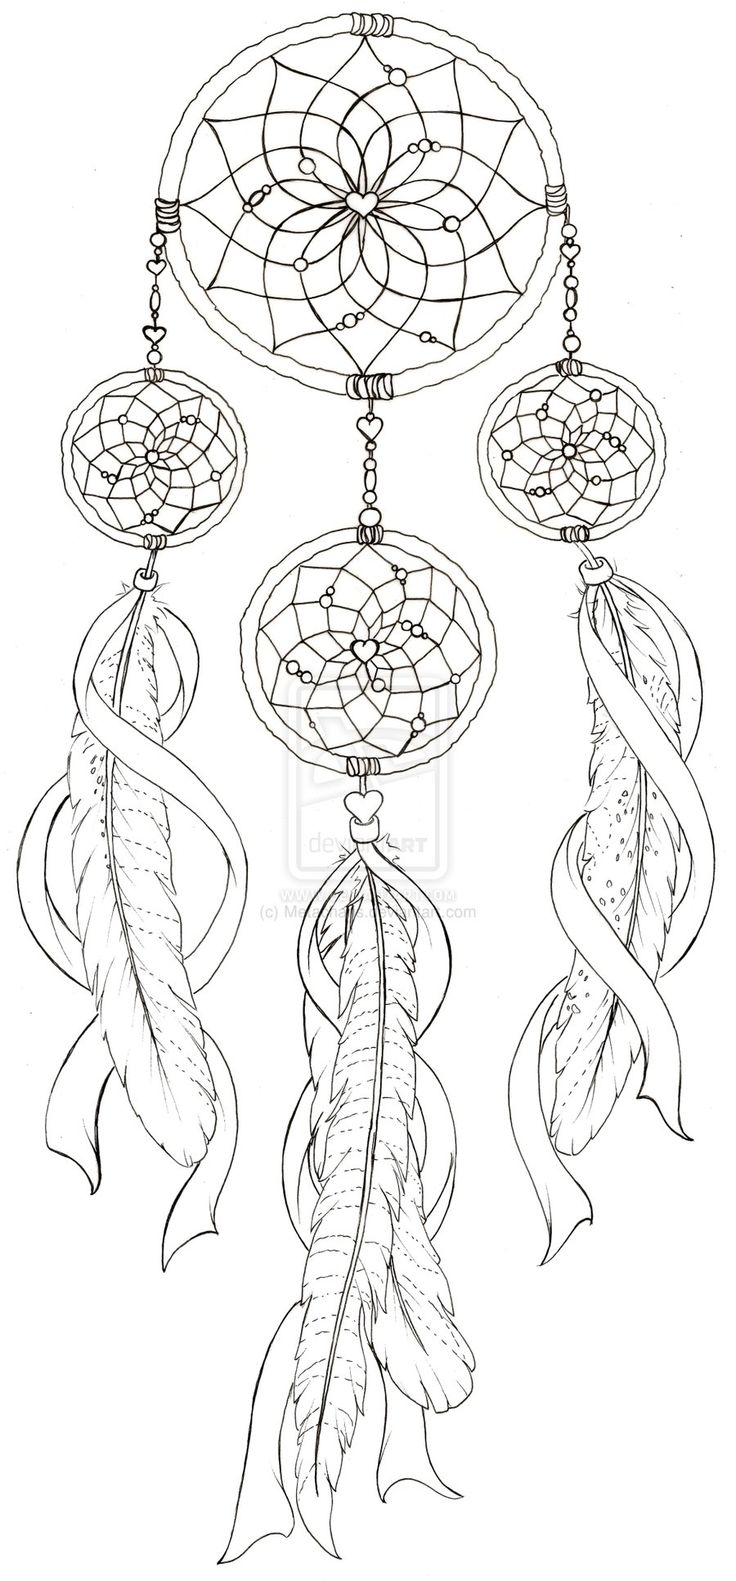 dreamcatcher tattoo template - dream catcher coloring pages to download and print for free